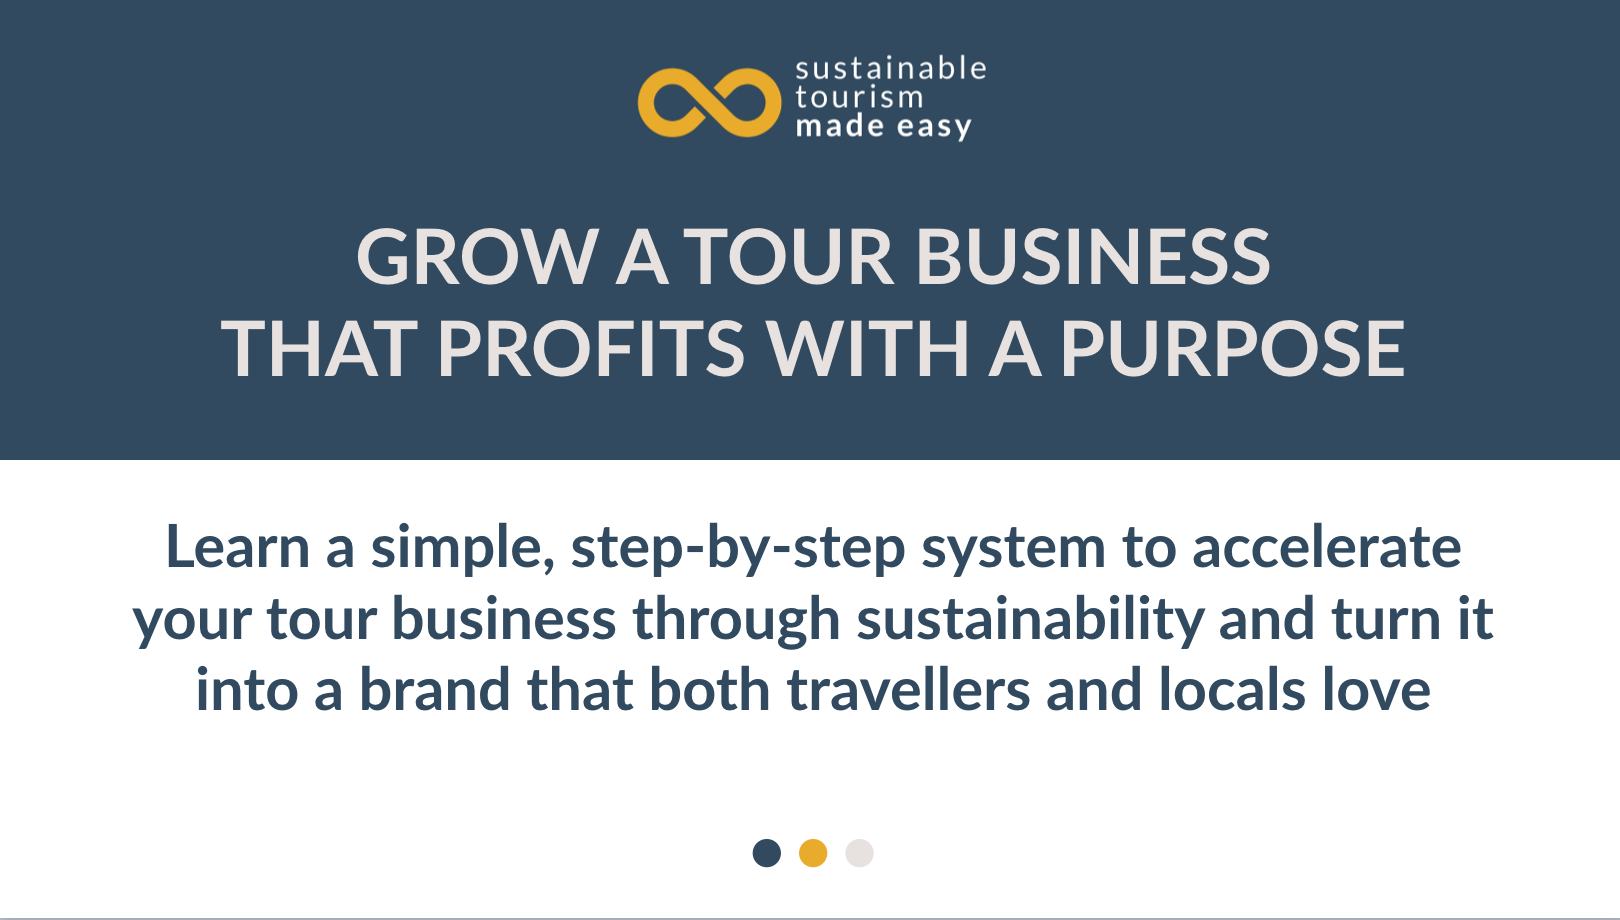 Grow a tour business that profits with a purpose